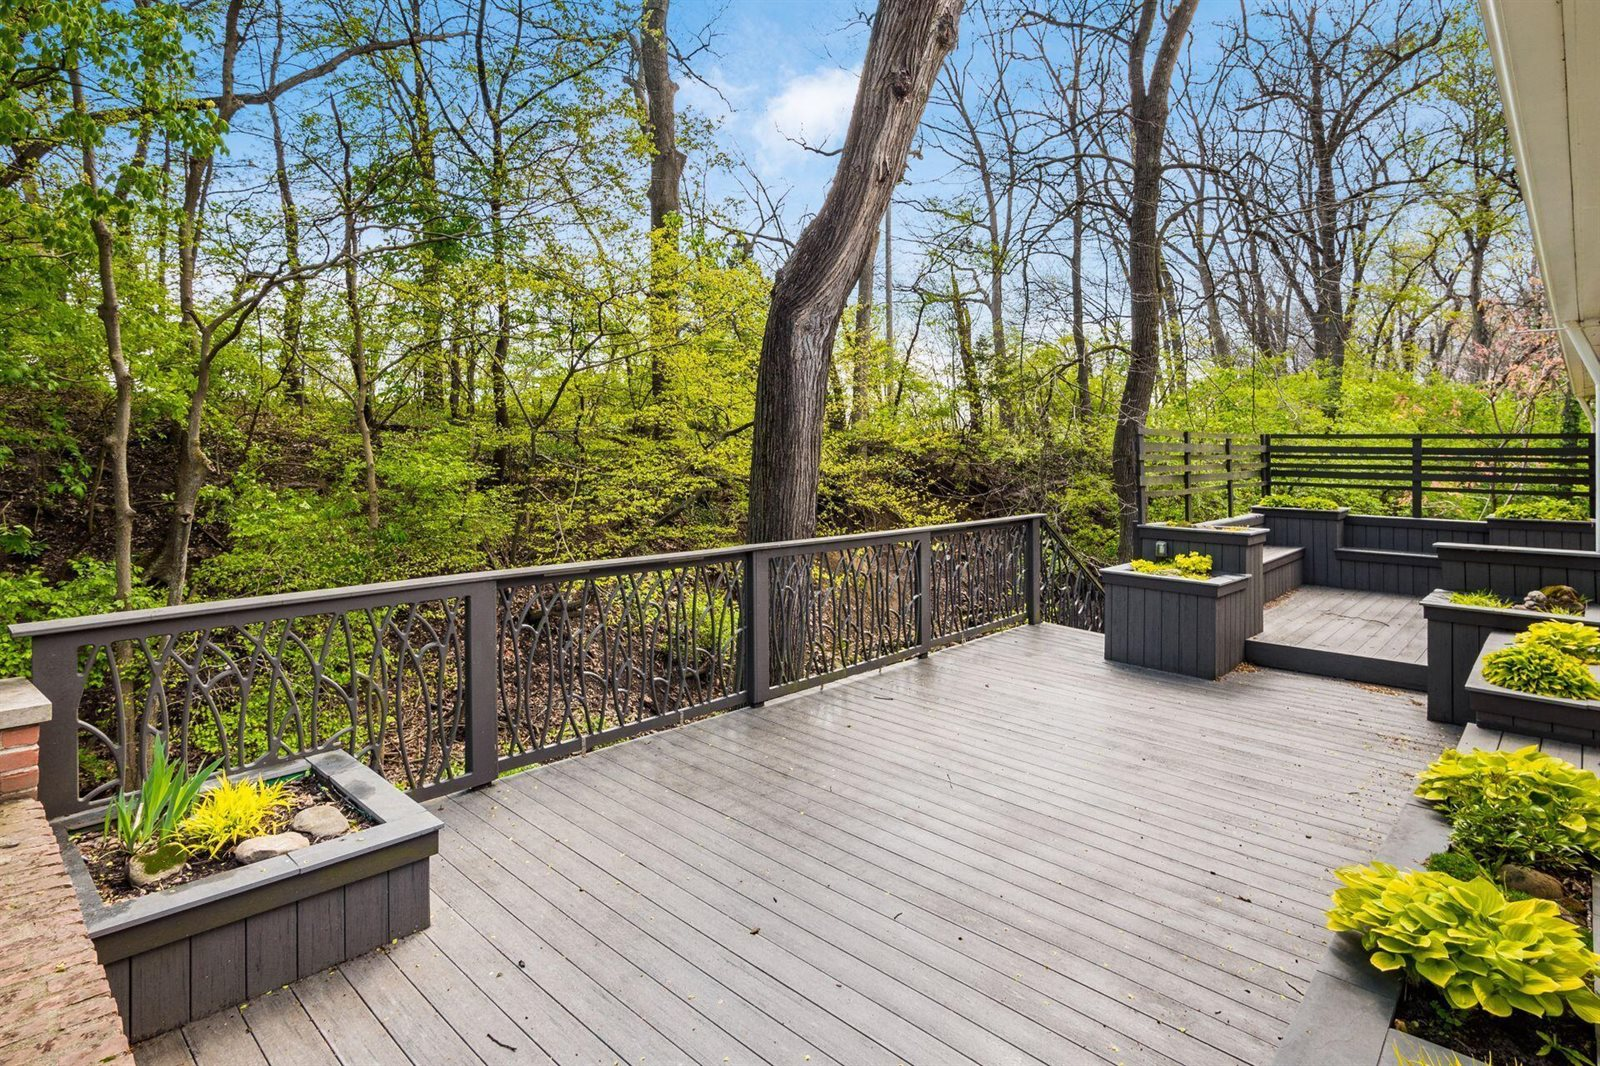 365 Medick Way, Worthington, OH 43085